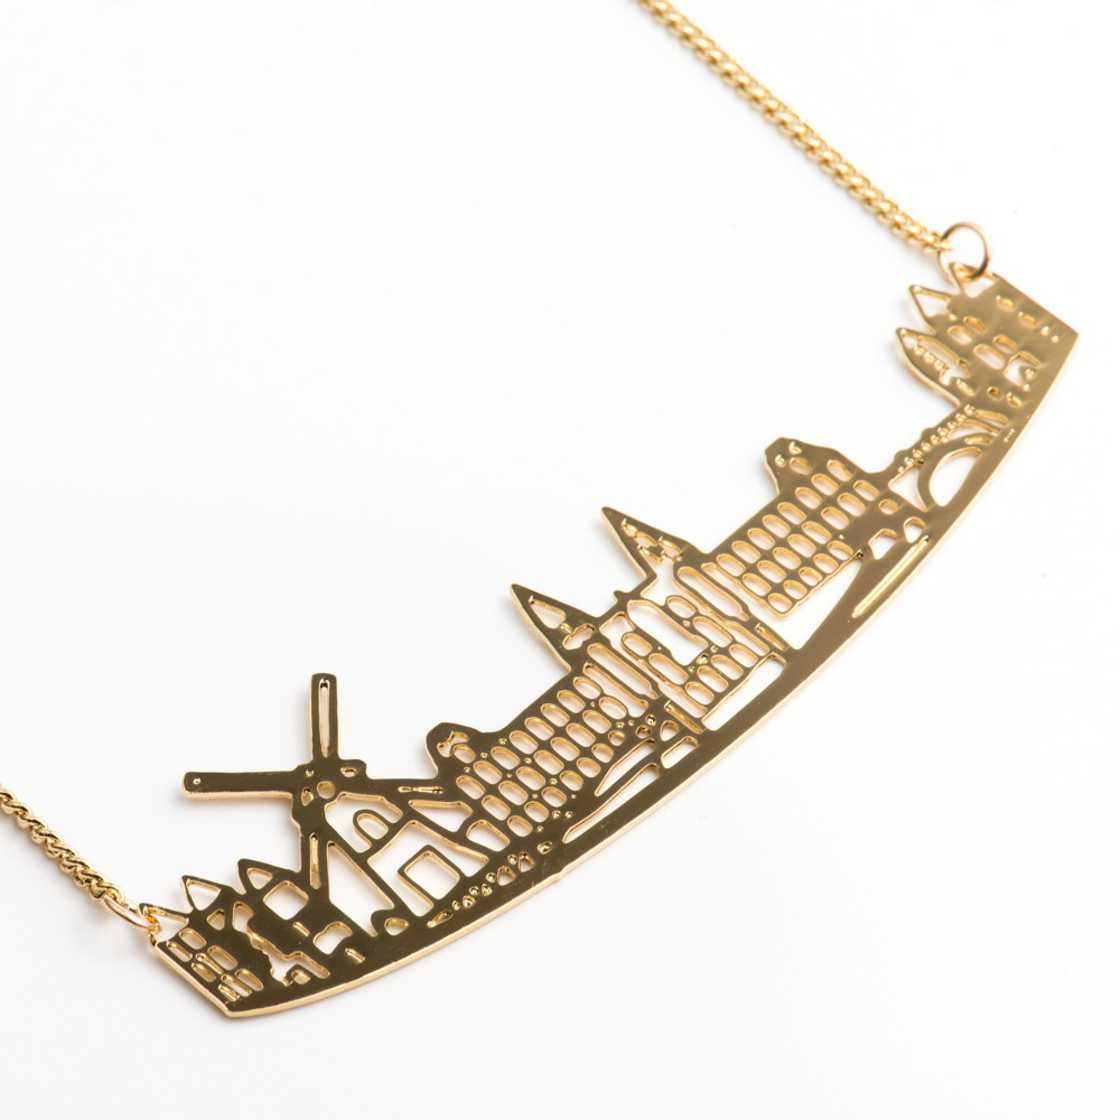 Skylines - Beautiful necklaces in tribute to the major cities of the world